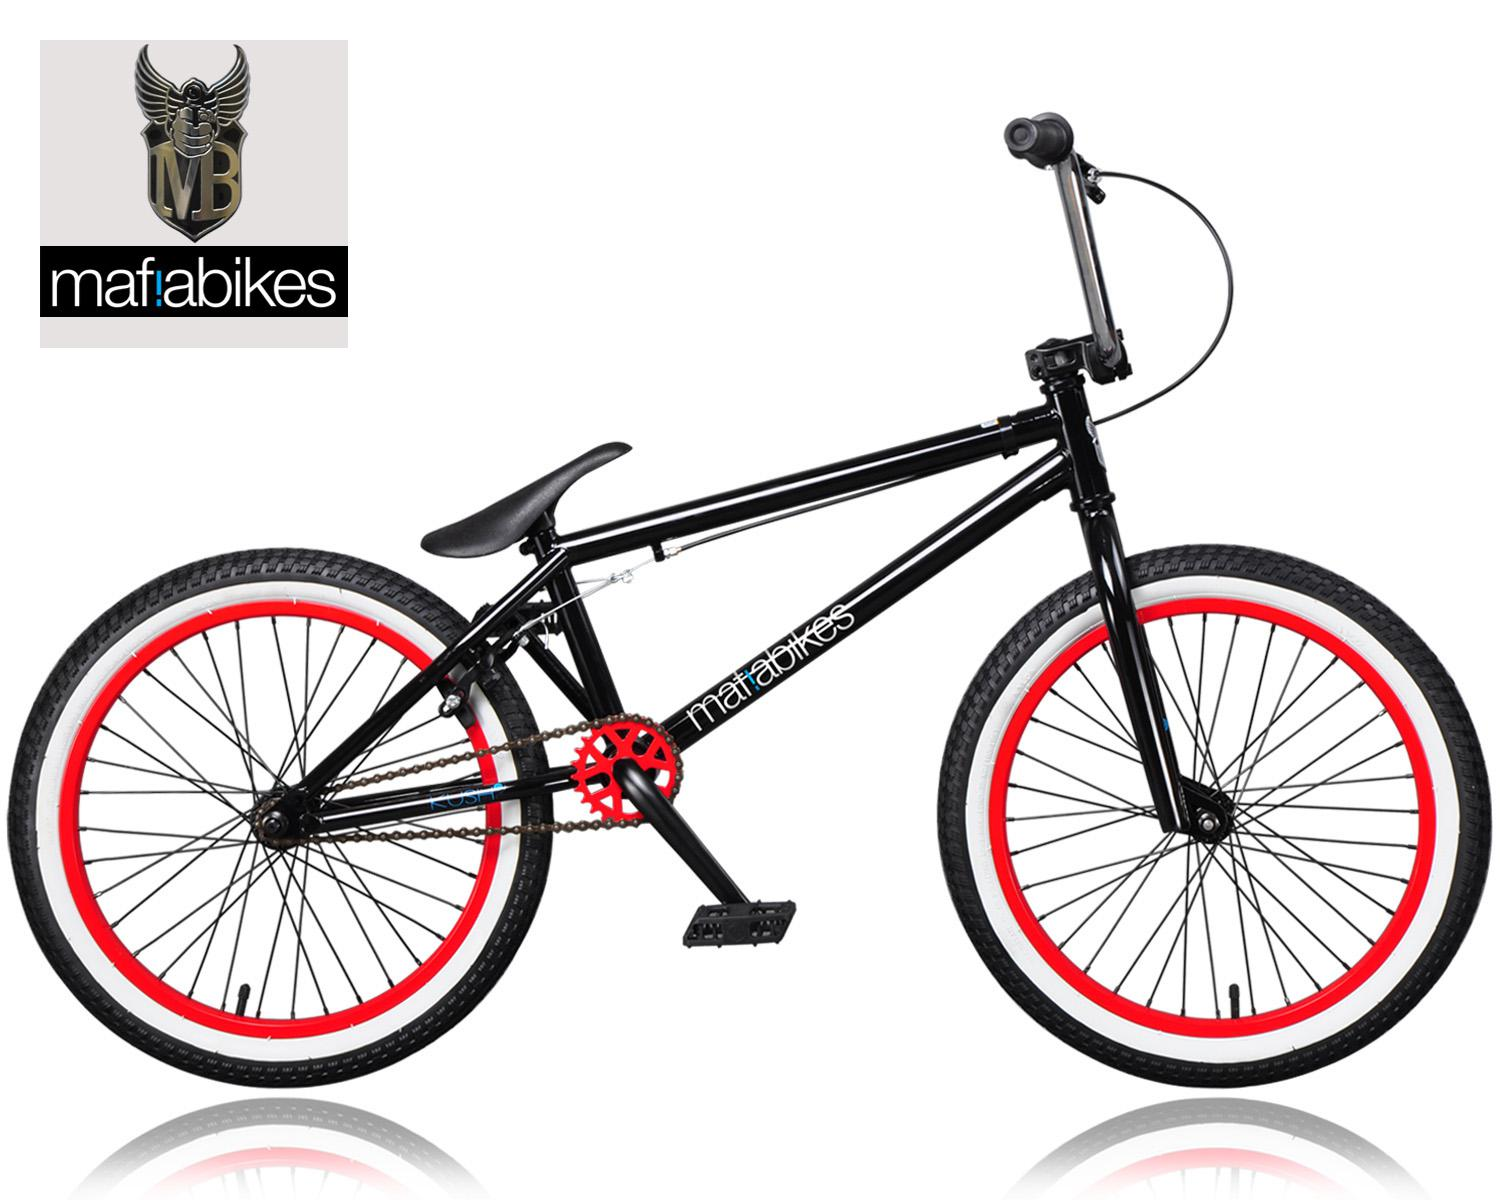 Best Bmx Bikes Cheap New Mafia BMX Street Bike